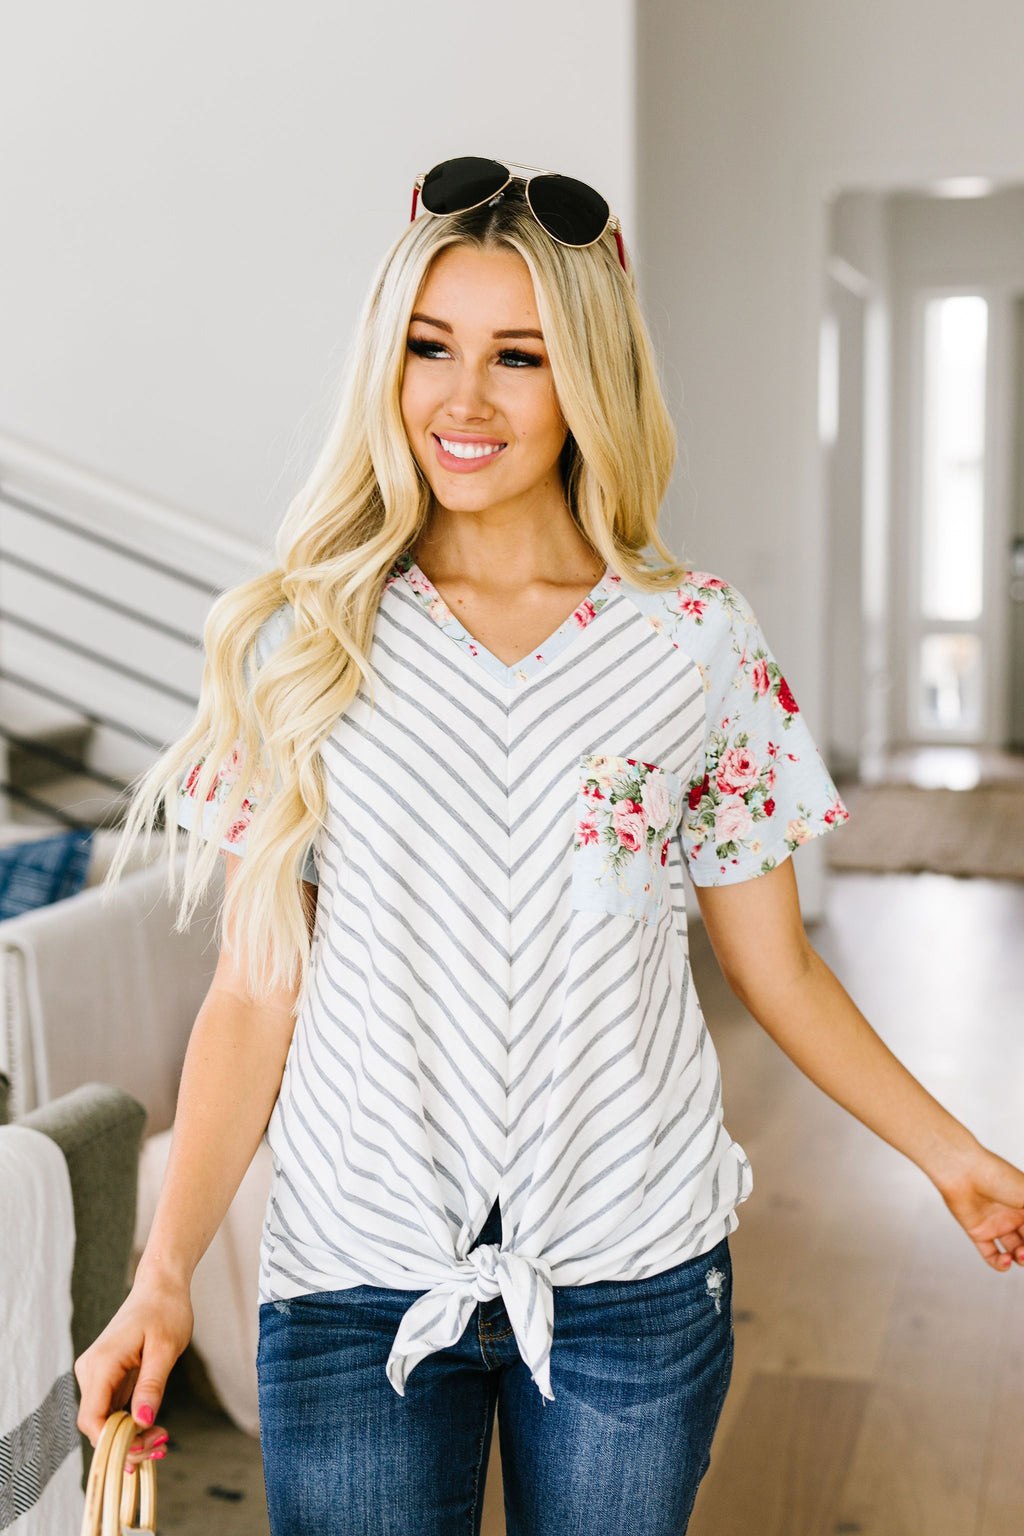 Flowers & Chevron Striped Top In Pale Blue